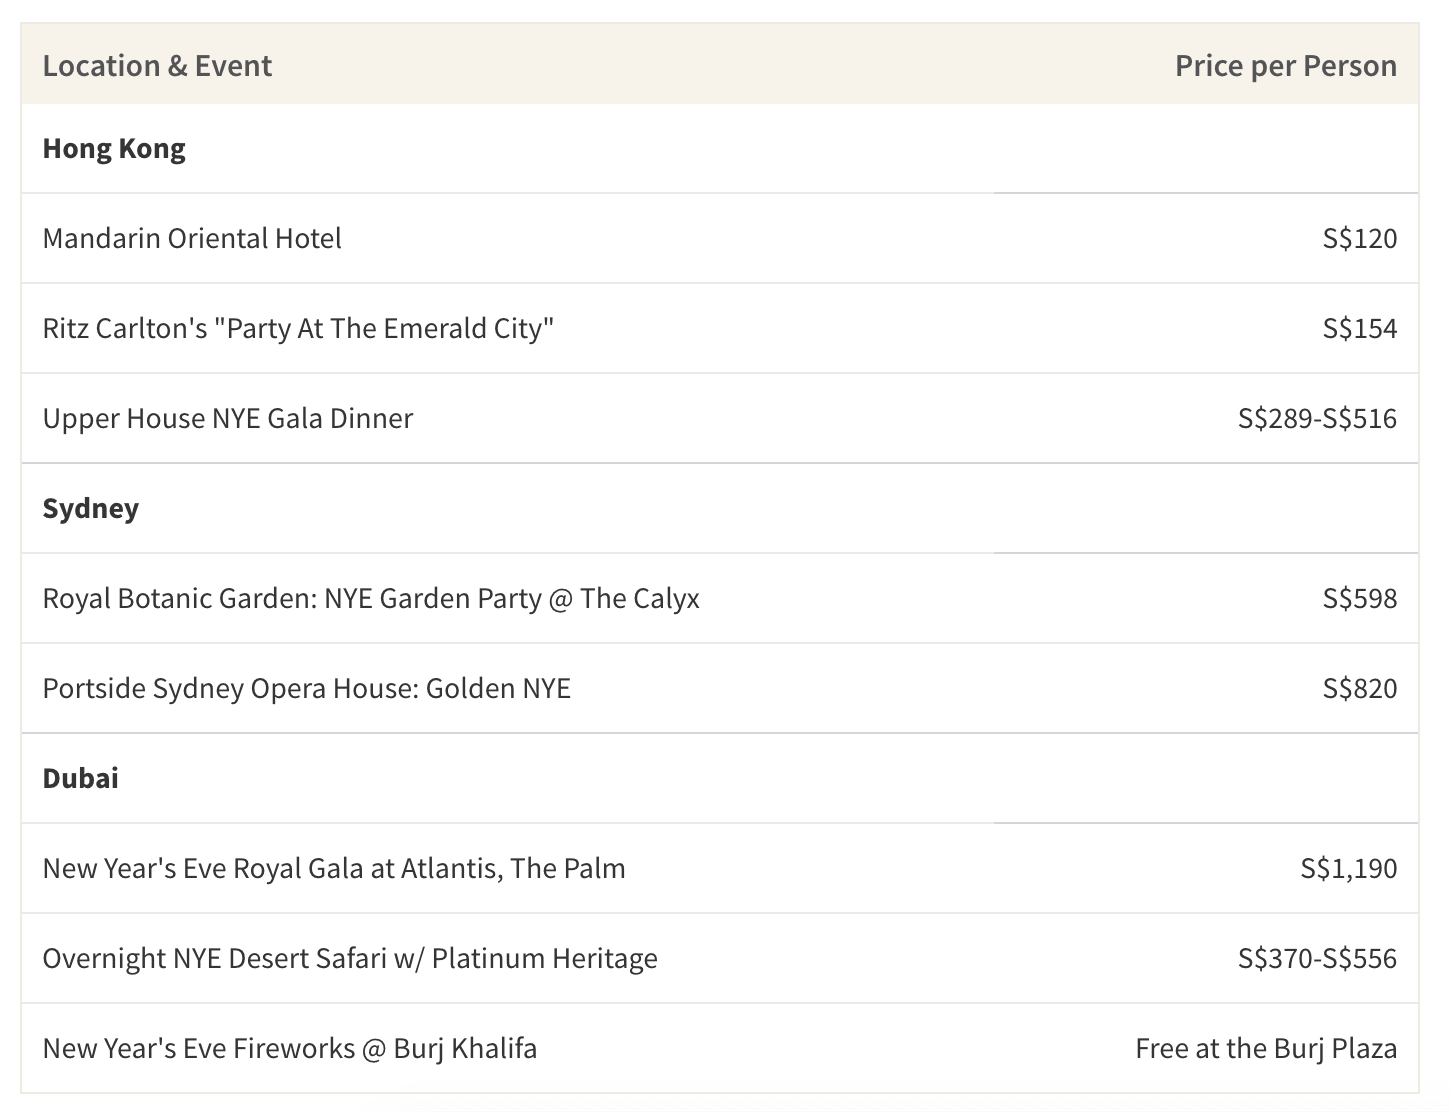 This table shows the average cost of NYE events in Hong Kong, Sydney and Dubai